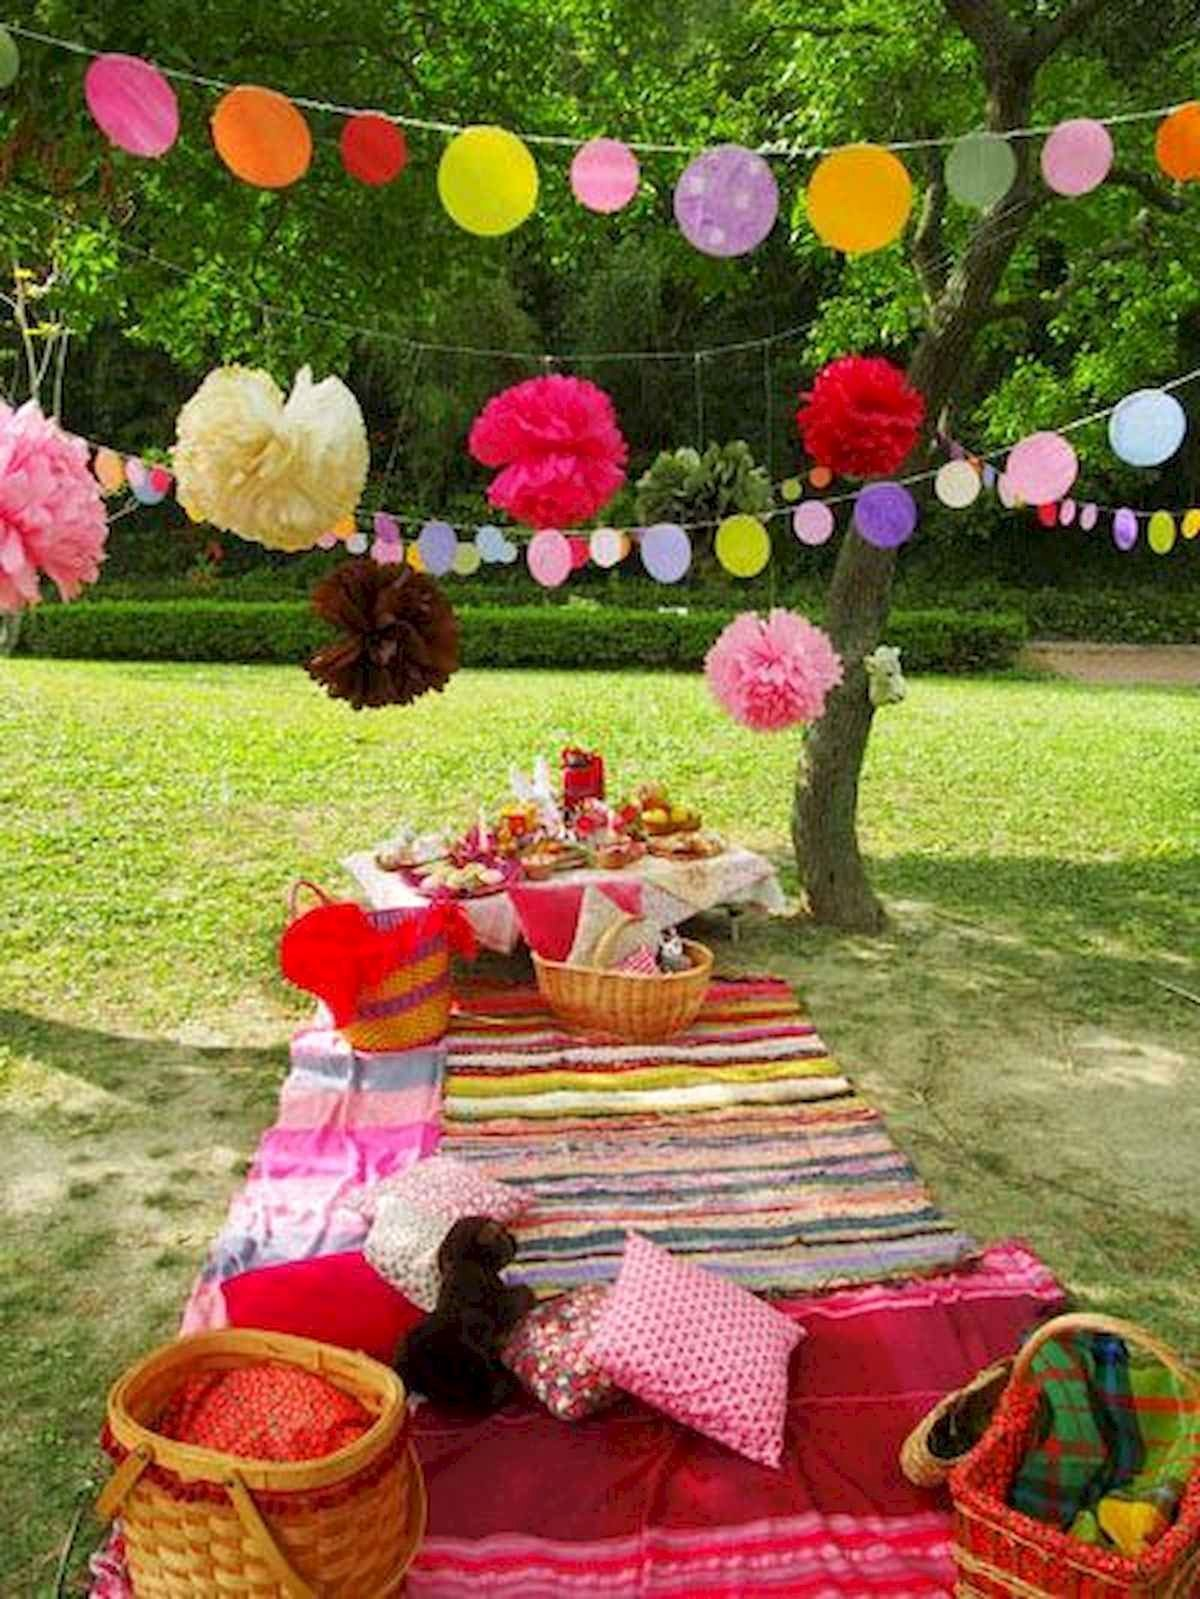 Birthday Decoration Ideas In Park Beautiful 60 Inspiring Outdoor Summer Party Decoration Ideas 30